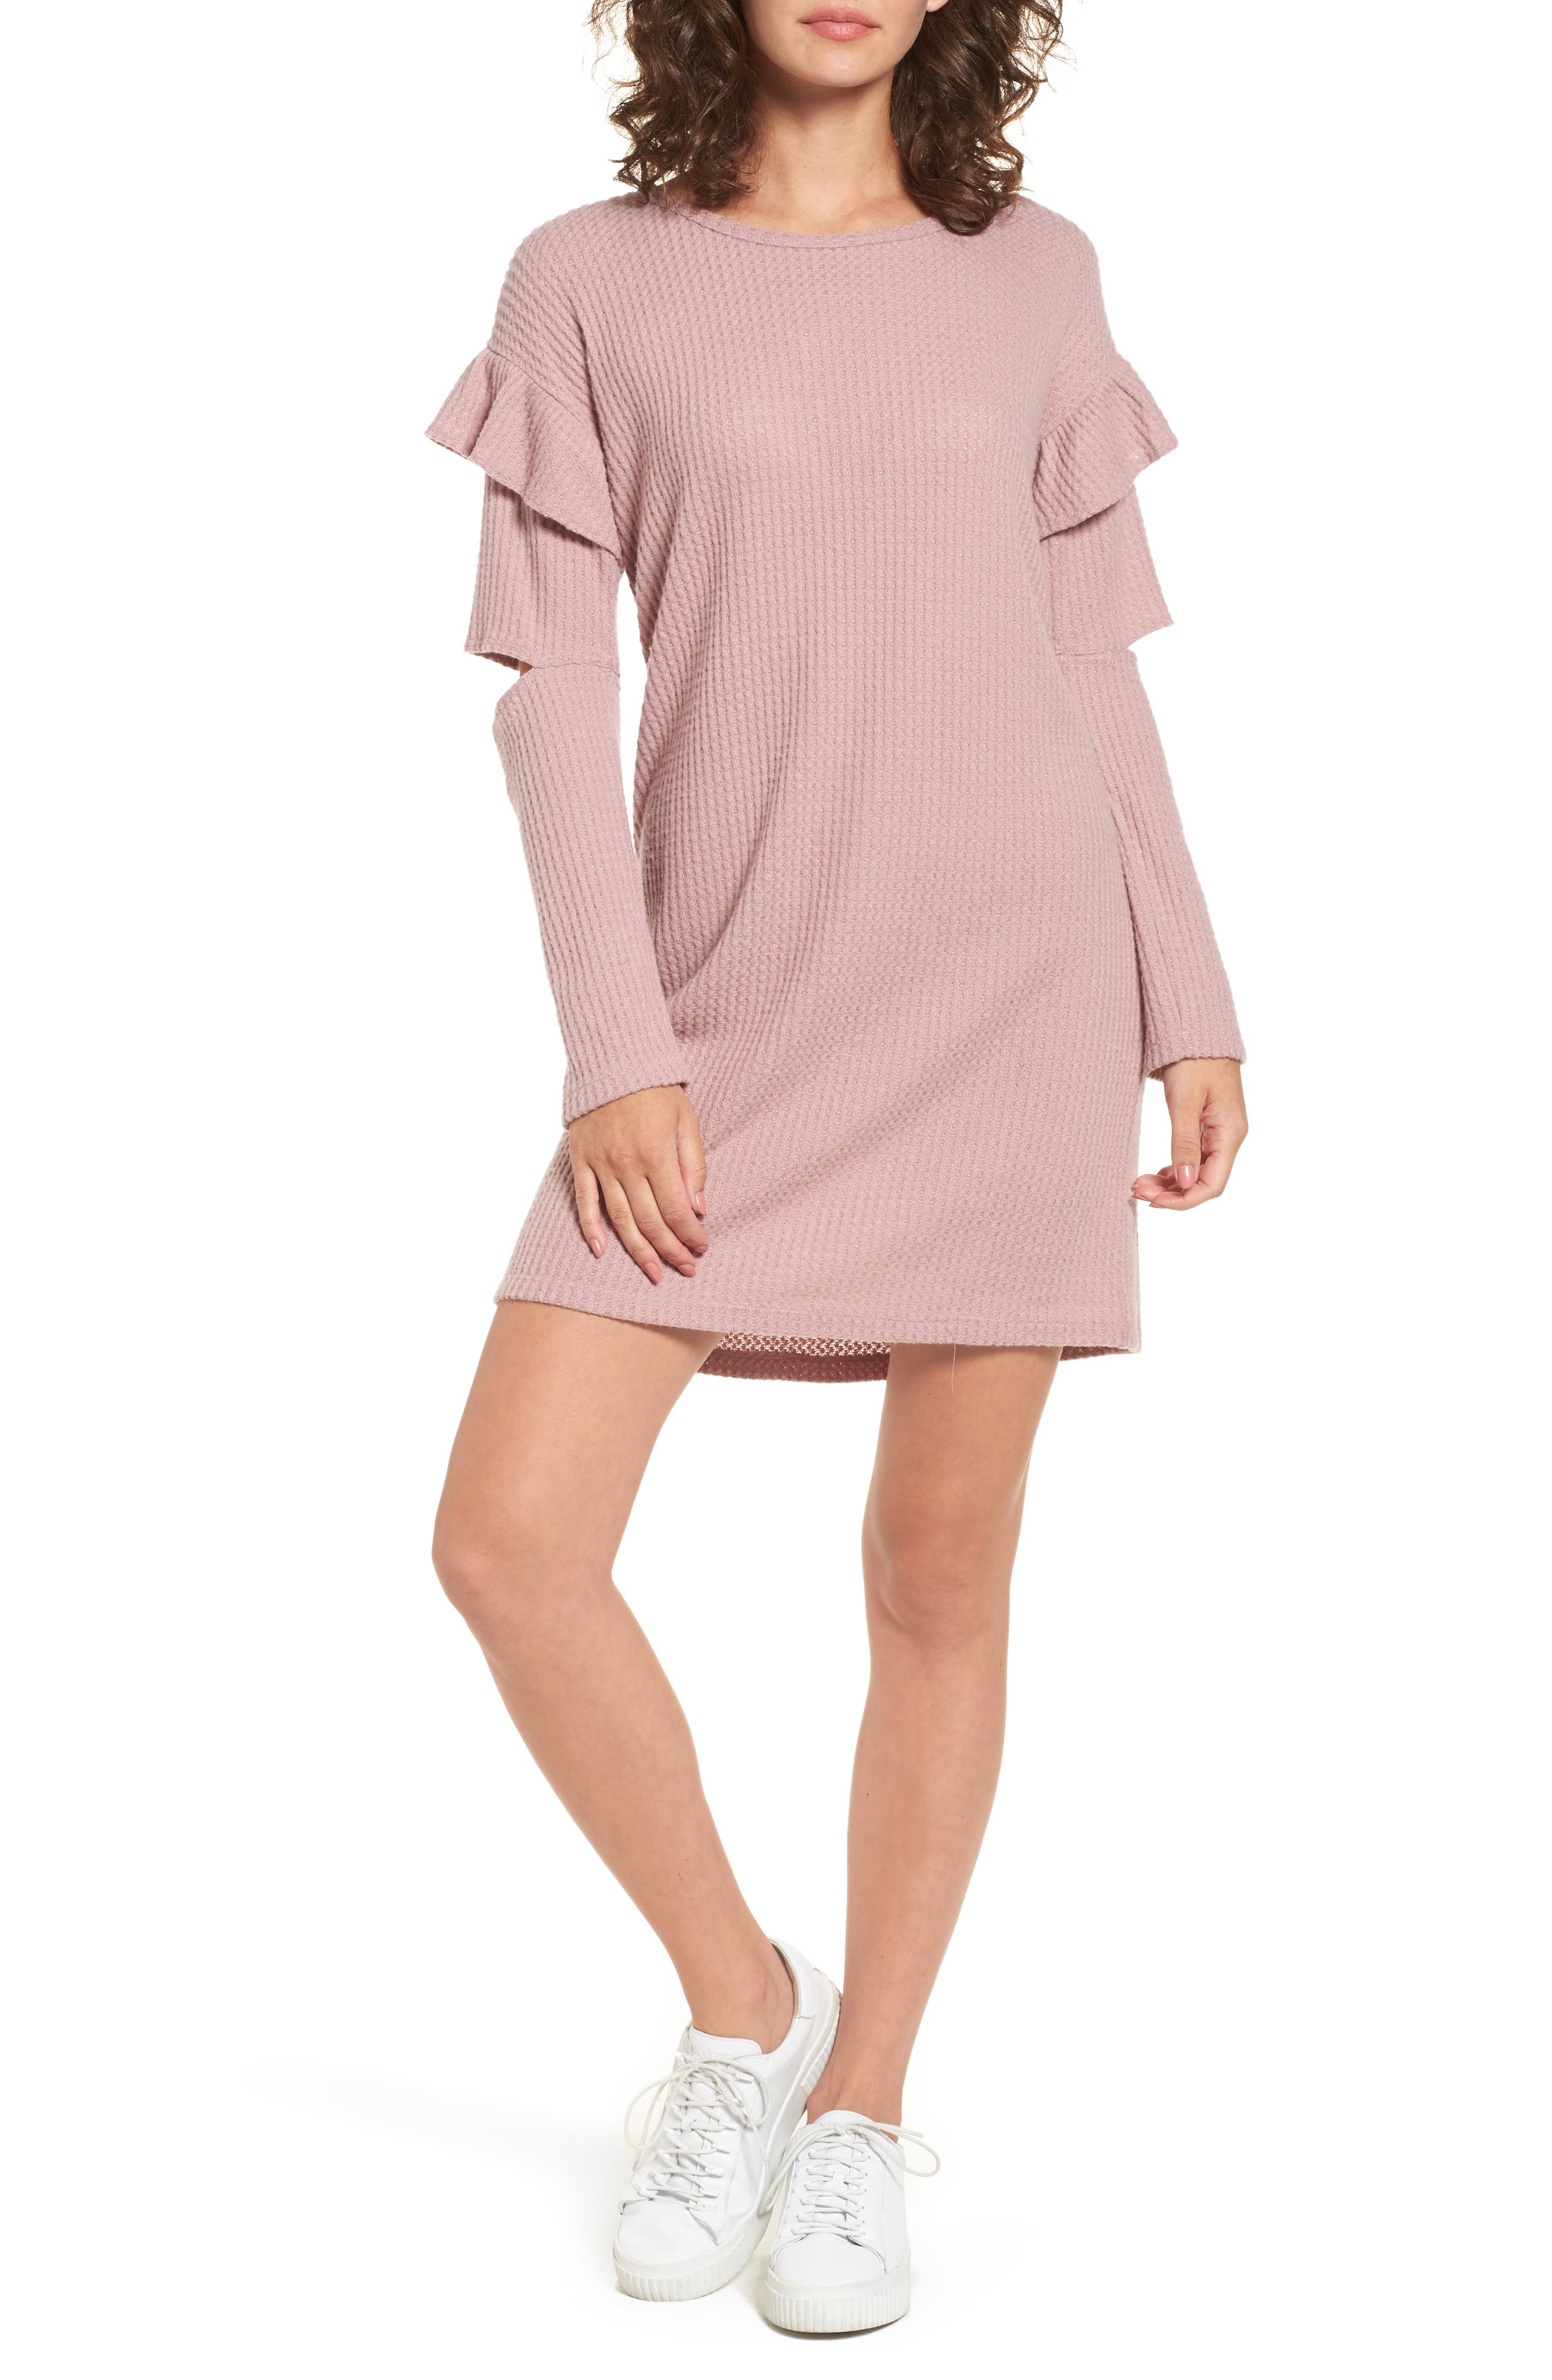 Everly Ruffle Sleeve Knit Dress